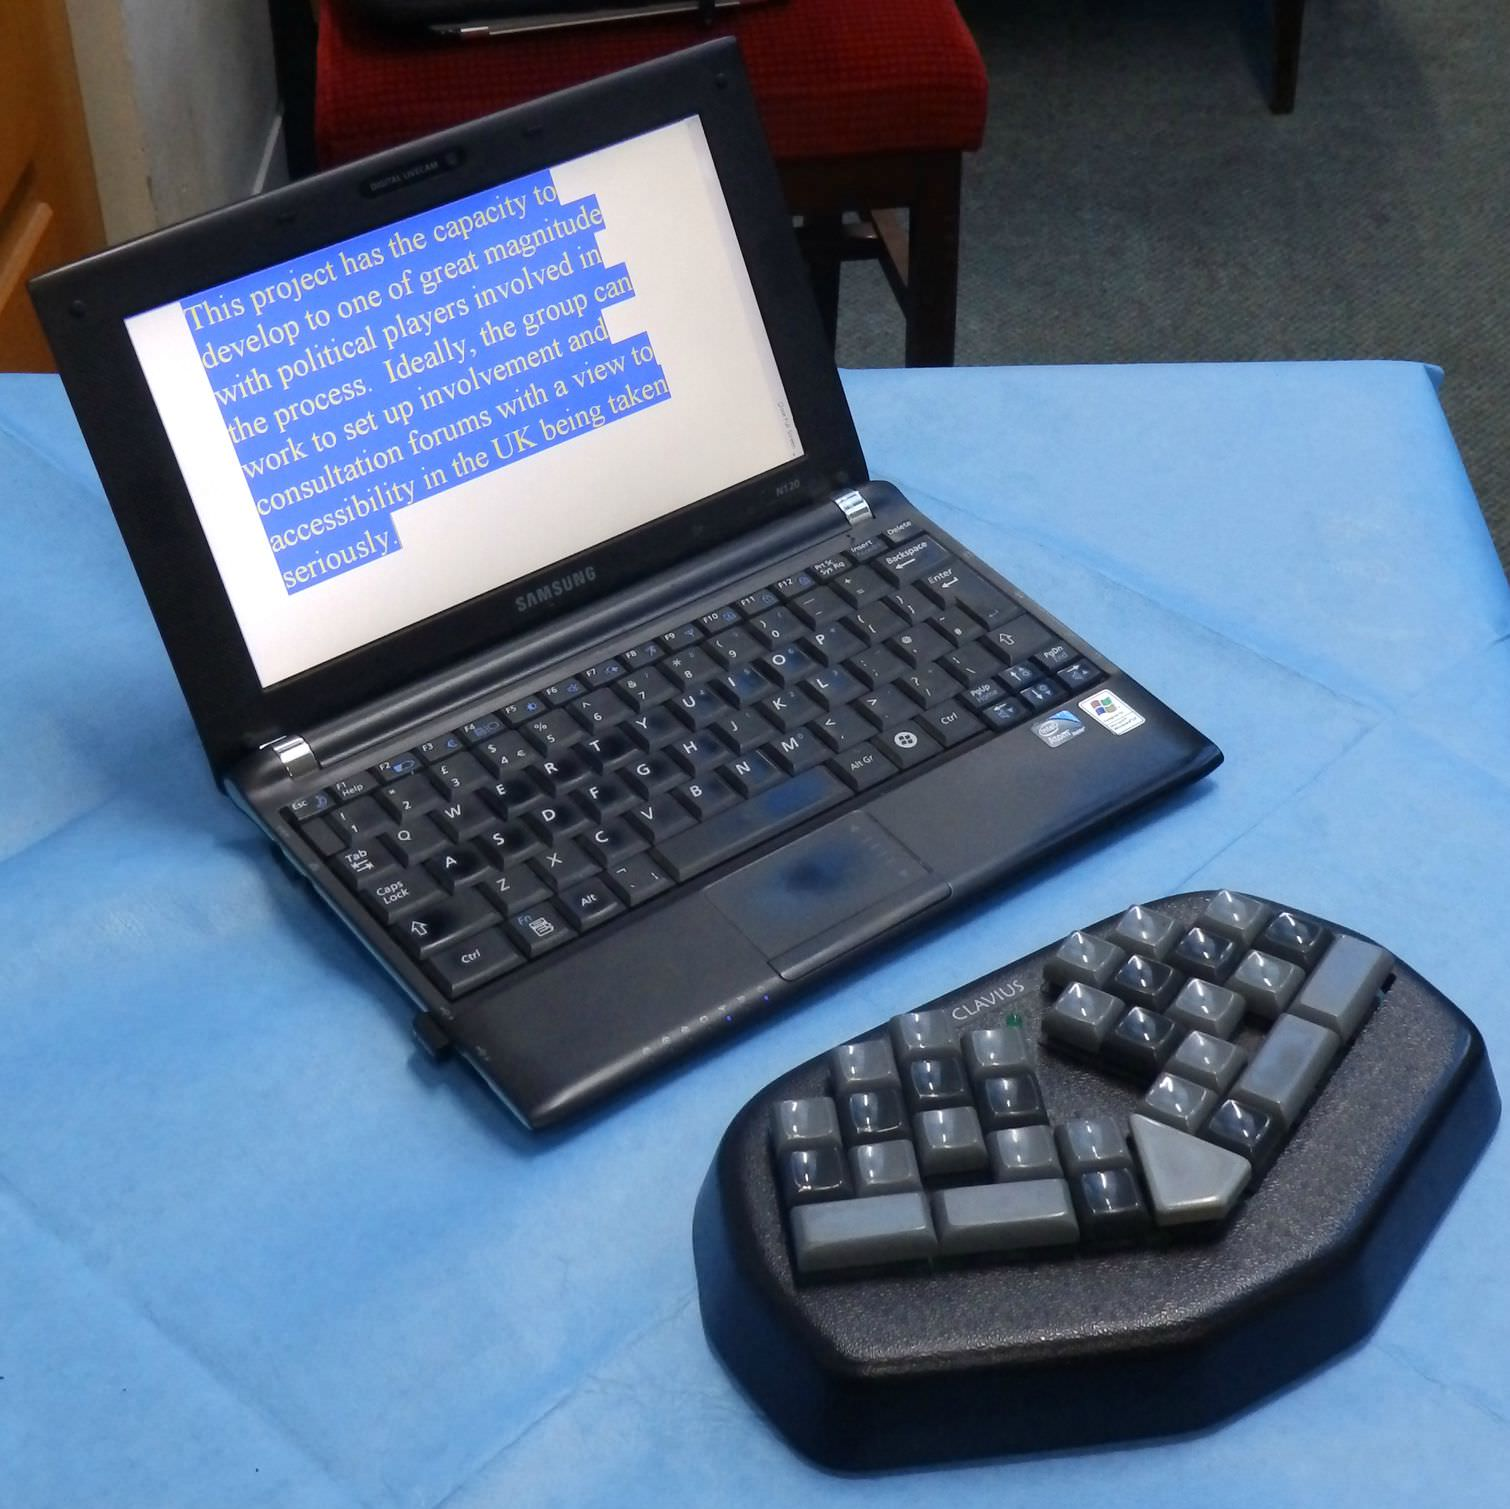 Up to date Palantype equipment consisting of an adapted keyboard and laptop for connectivity